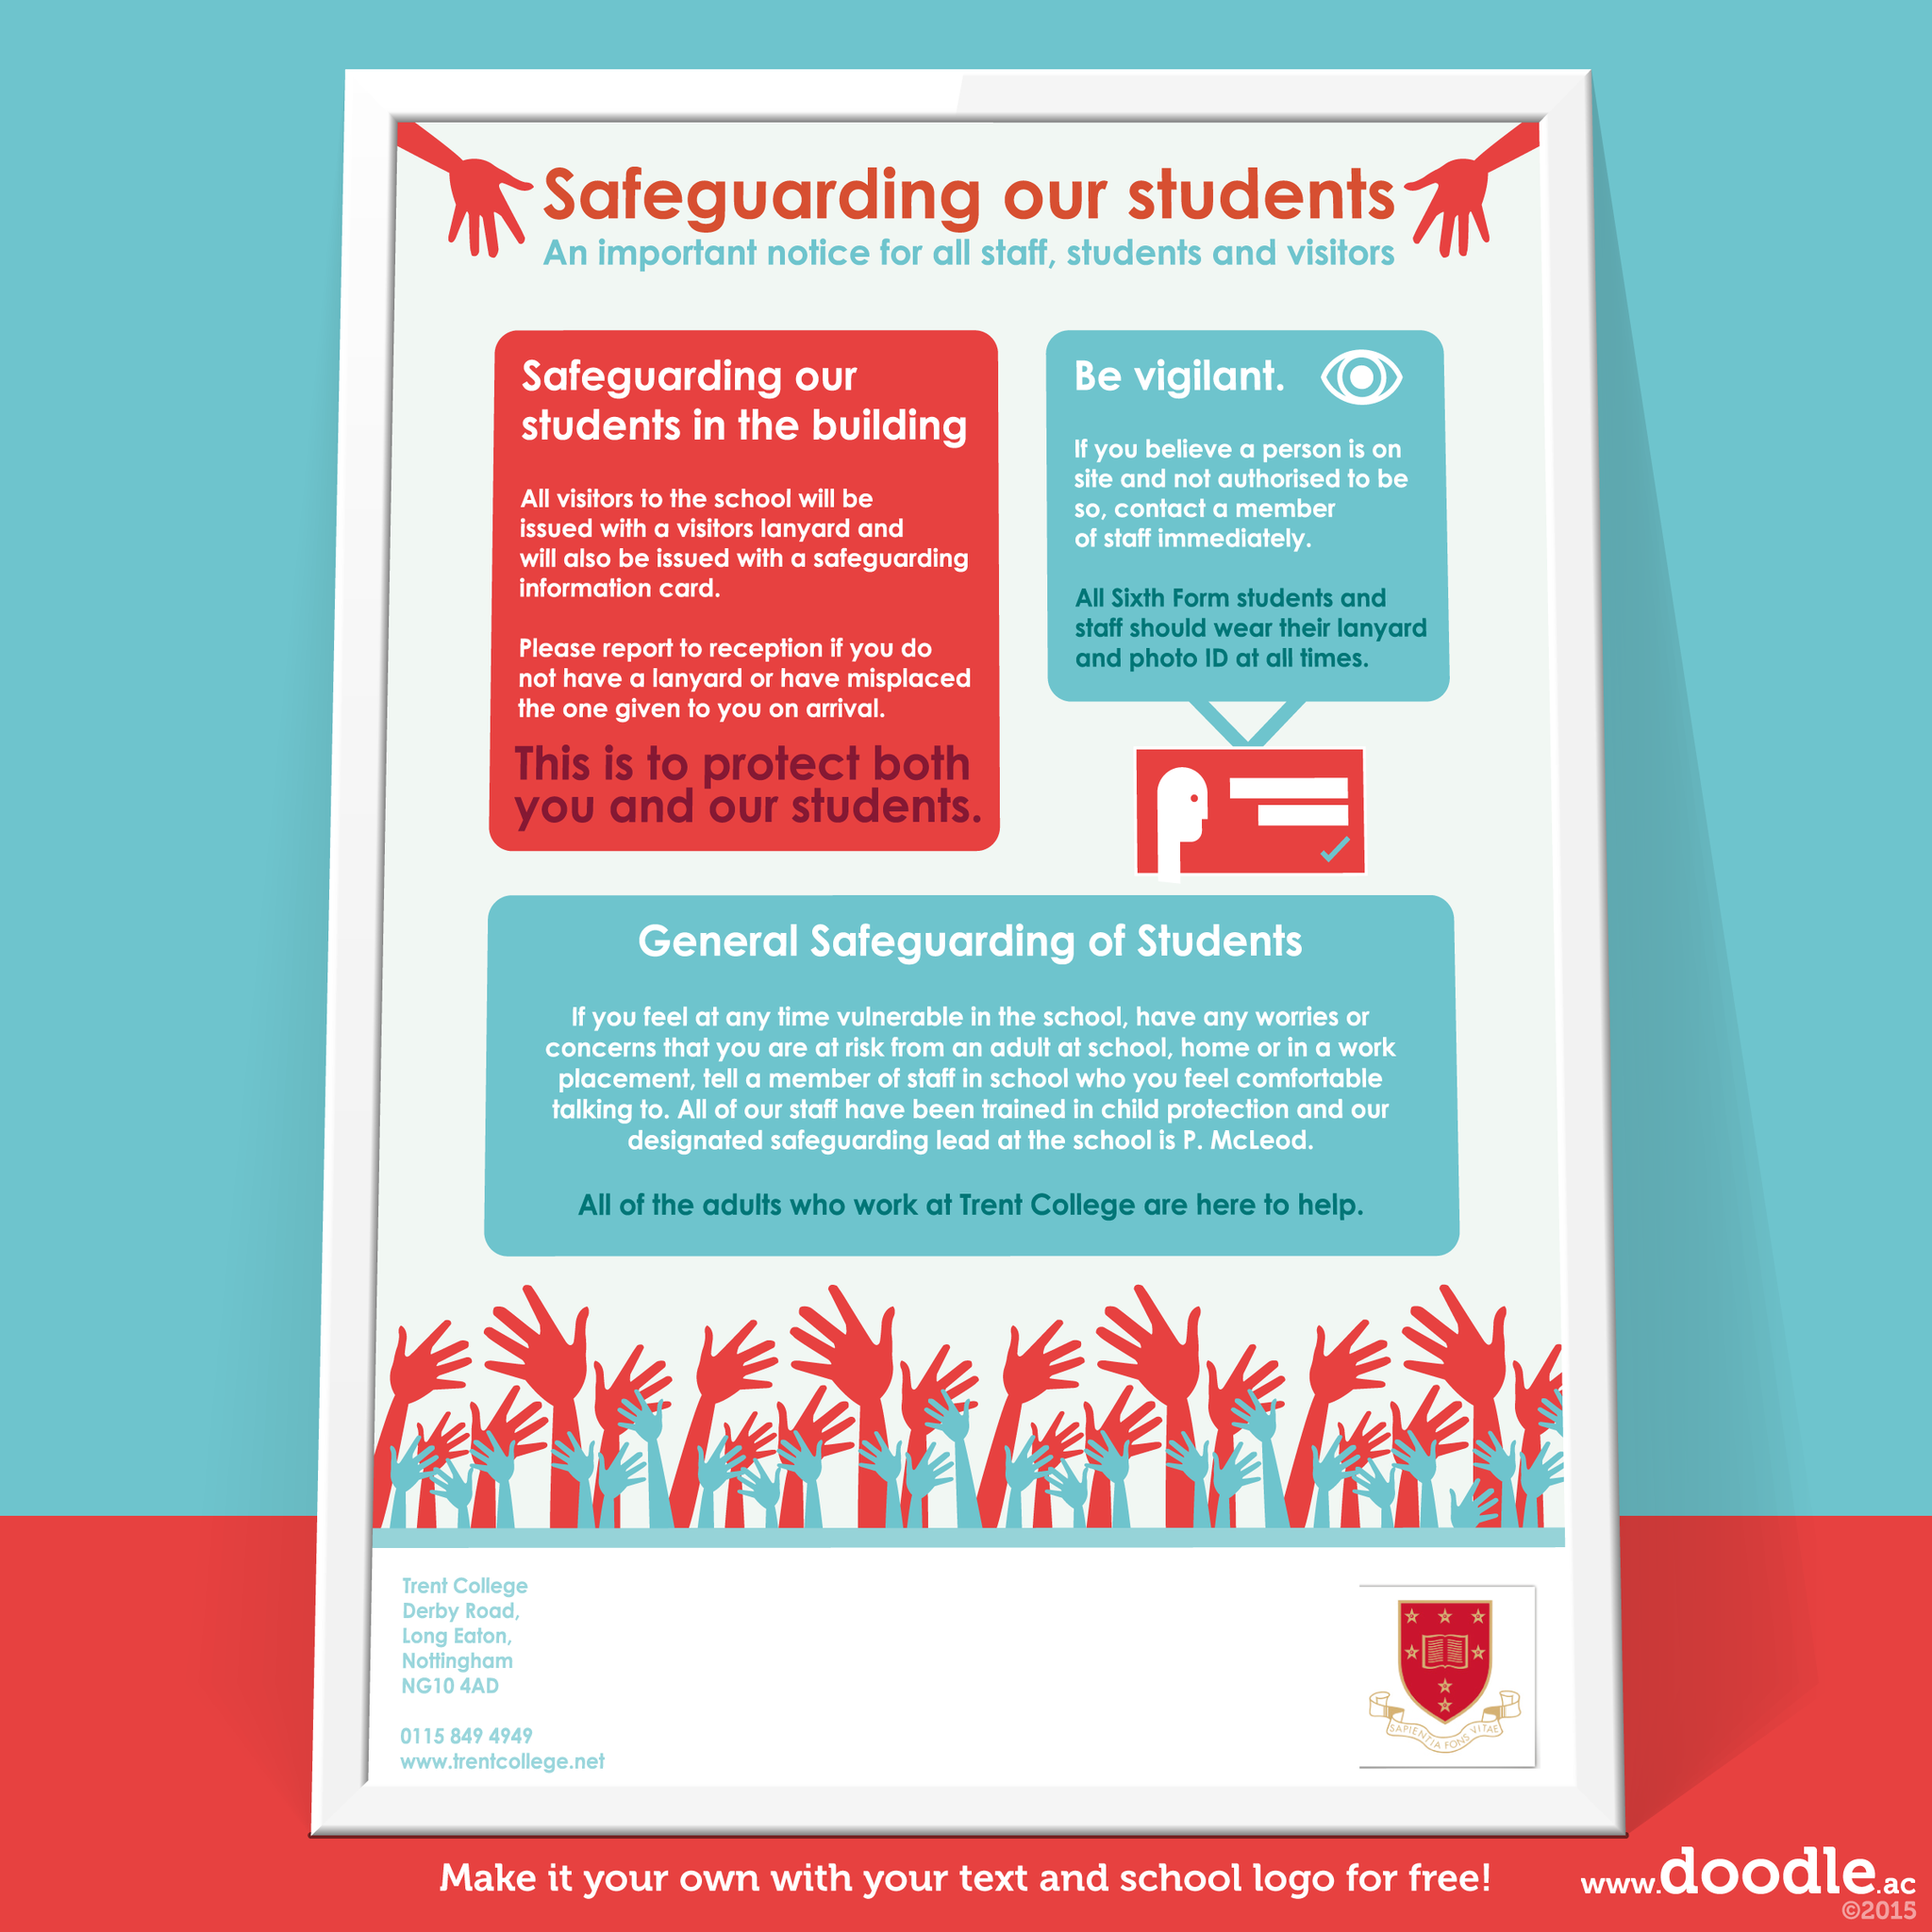 Safeguarding our students poster - doodle education